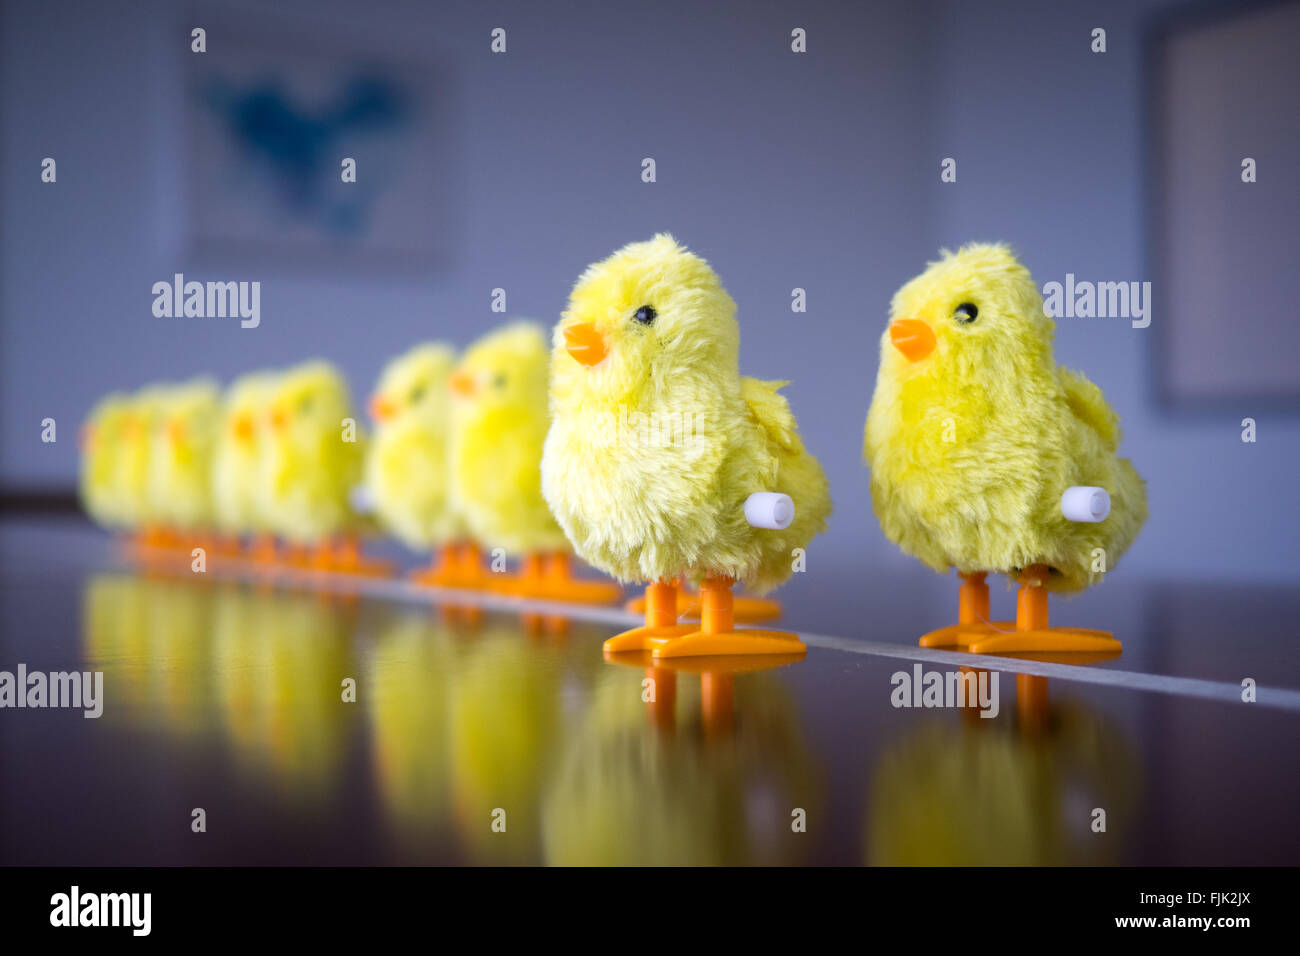 A wind-up baby chick toy. Concept: leadership, taking the first step, standing out from the crowd. - Stock Image